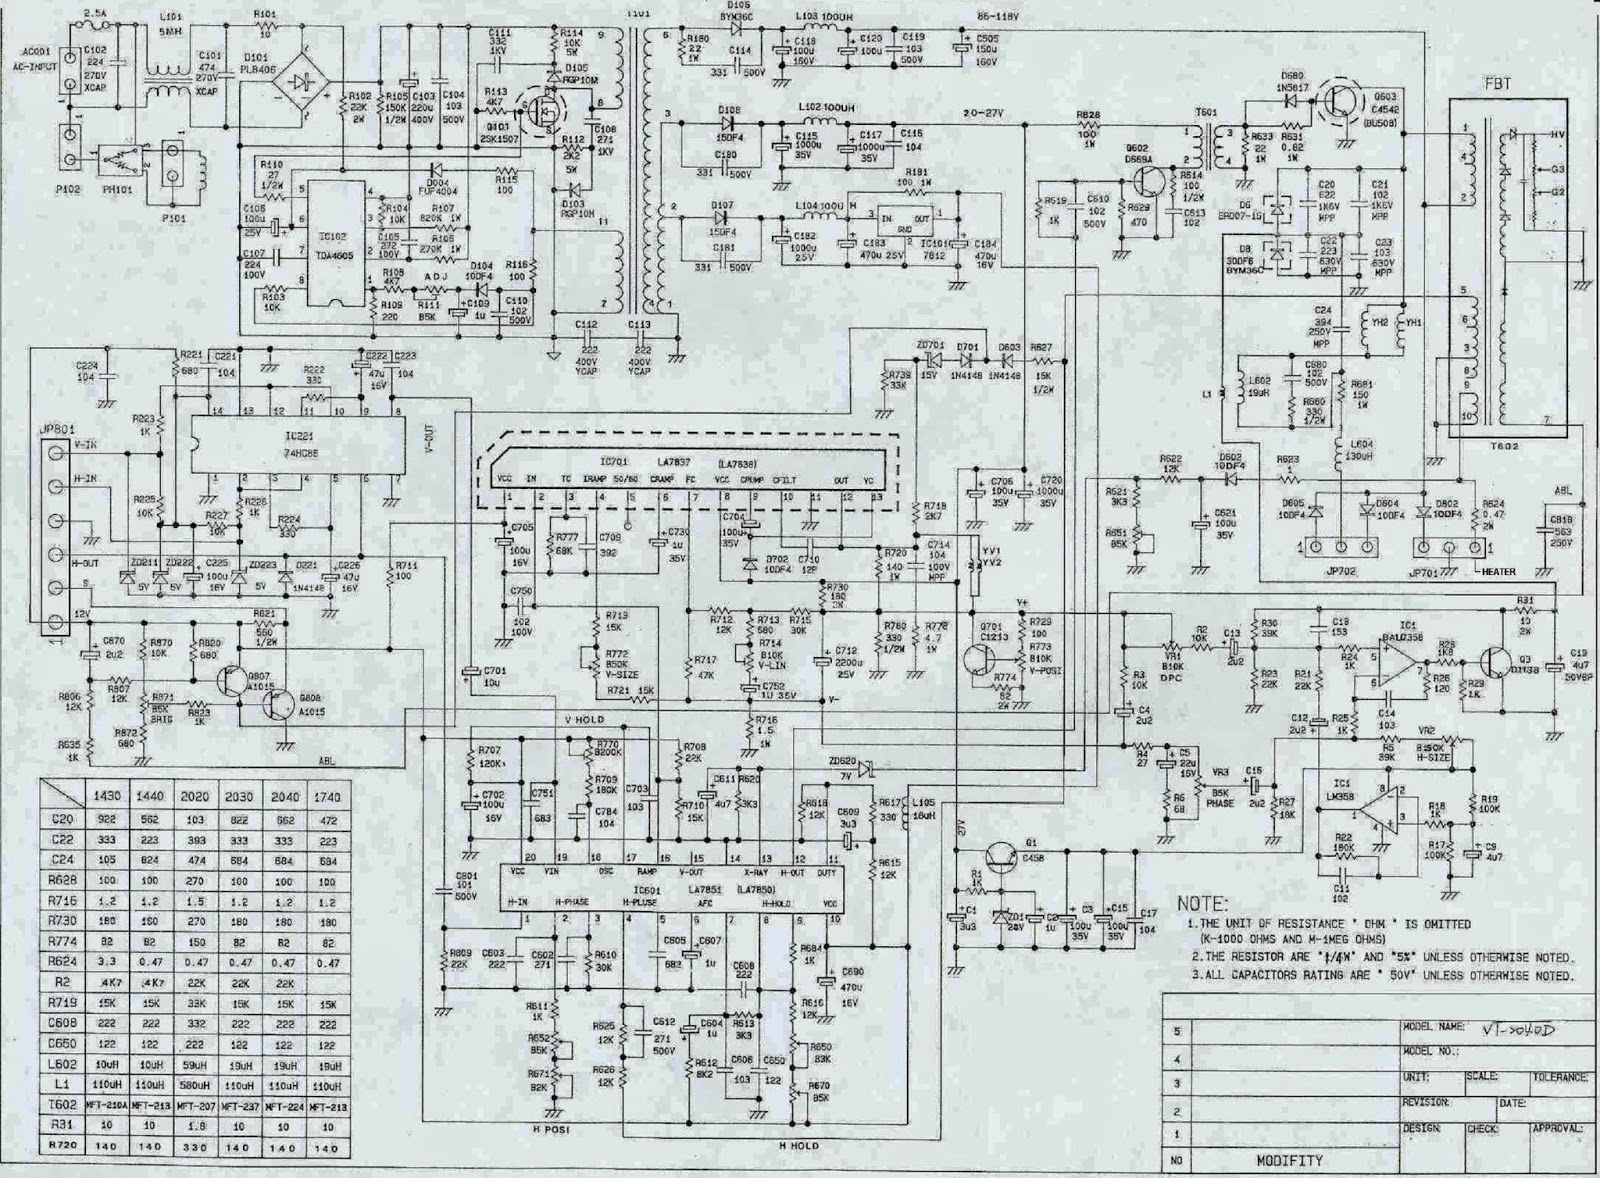 lcd monitor power supply schematics lcd free engine lg tv power supply schematics diagram of a [ 1600 x 1178 Pixel ]